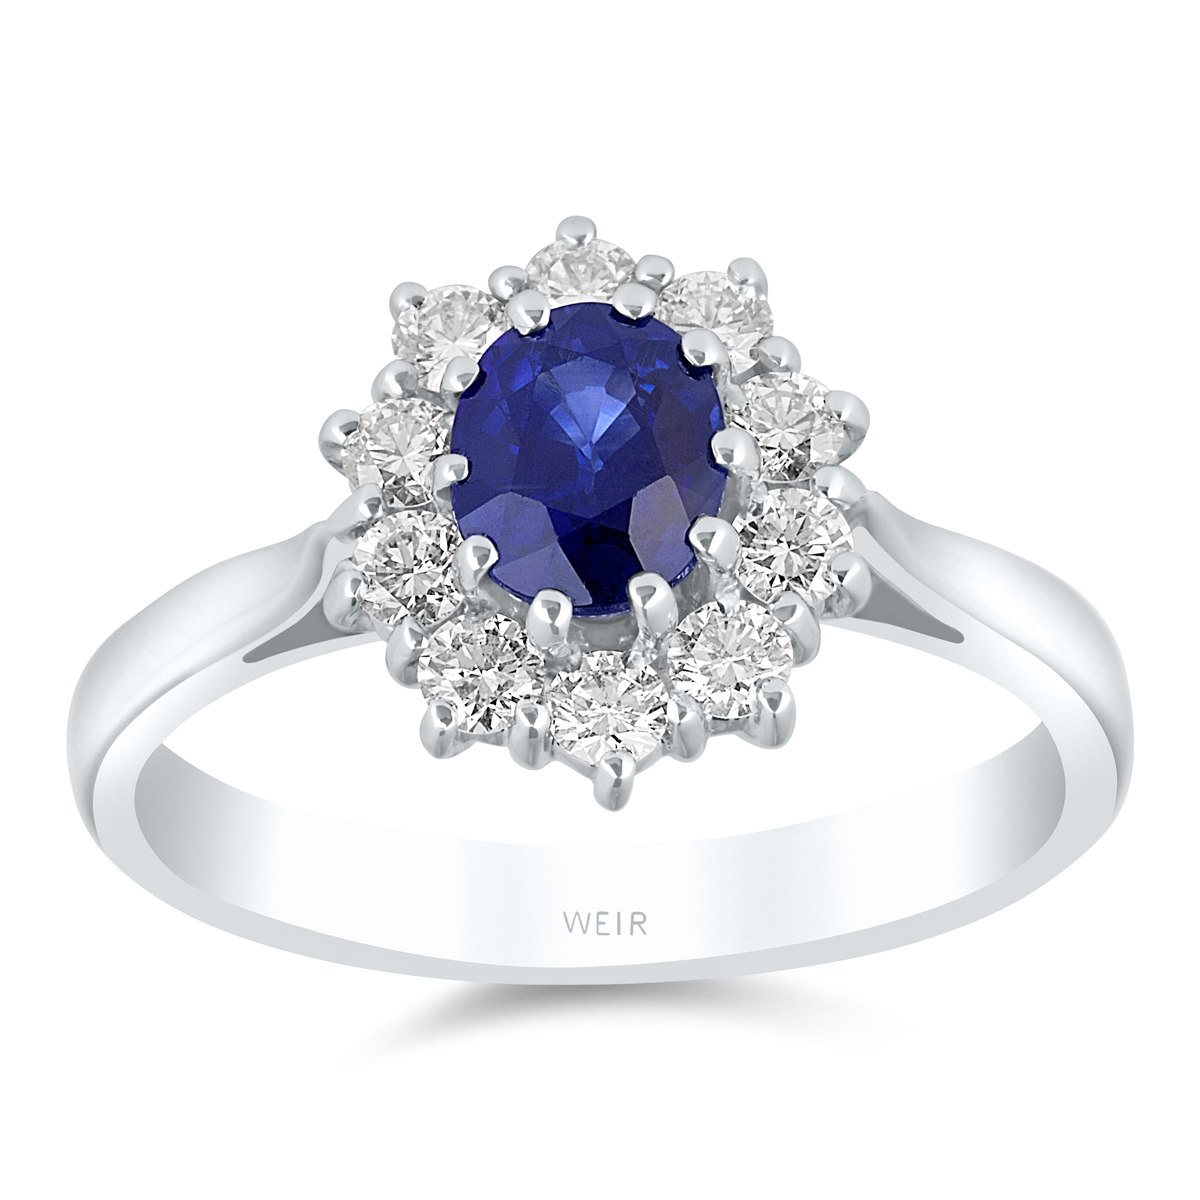 colourful luna statement engagement ring gemstone cut the rings moonstone diamond coloured london styles